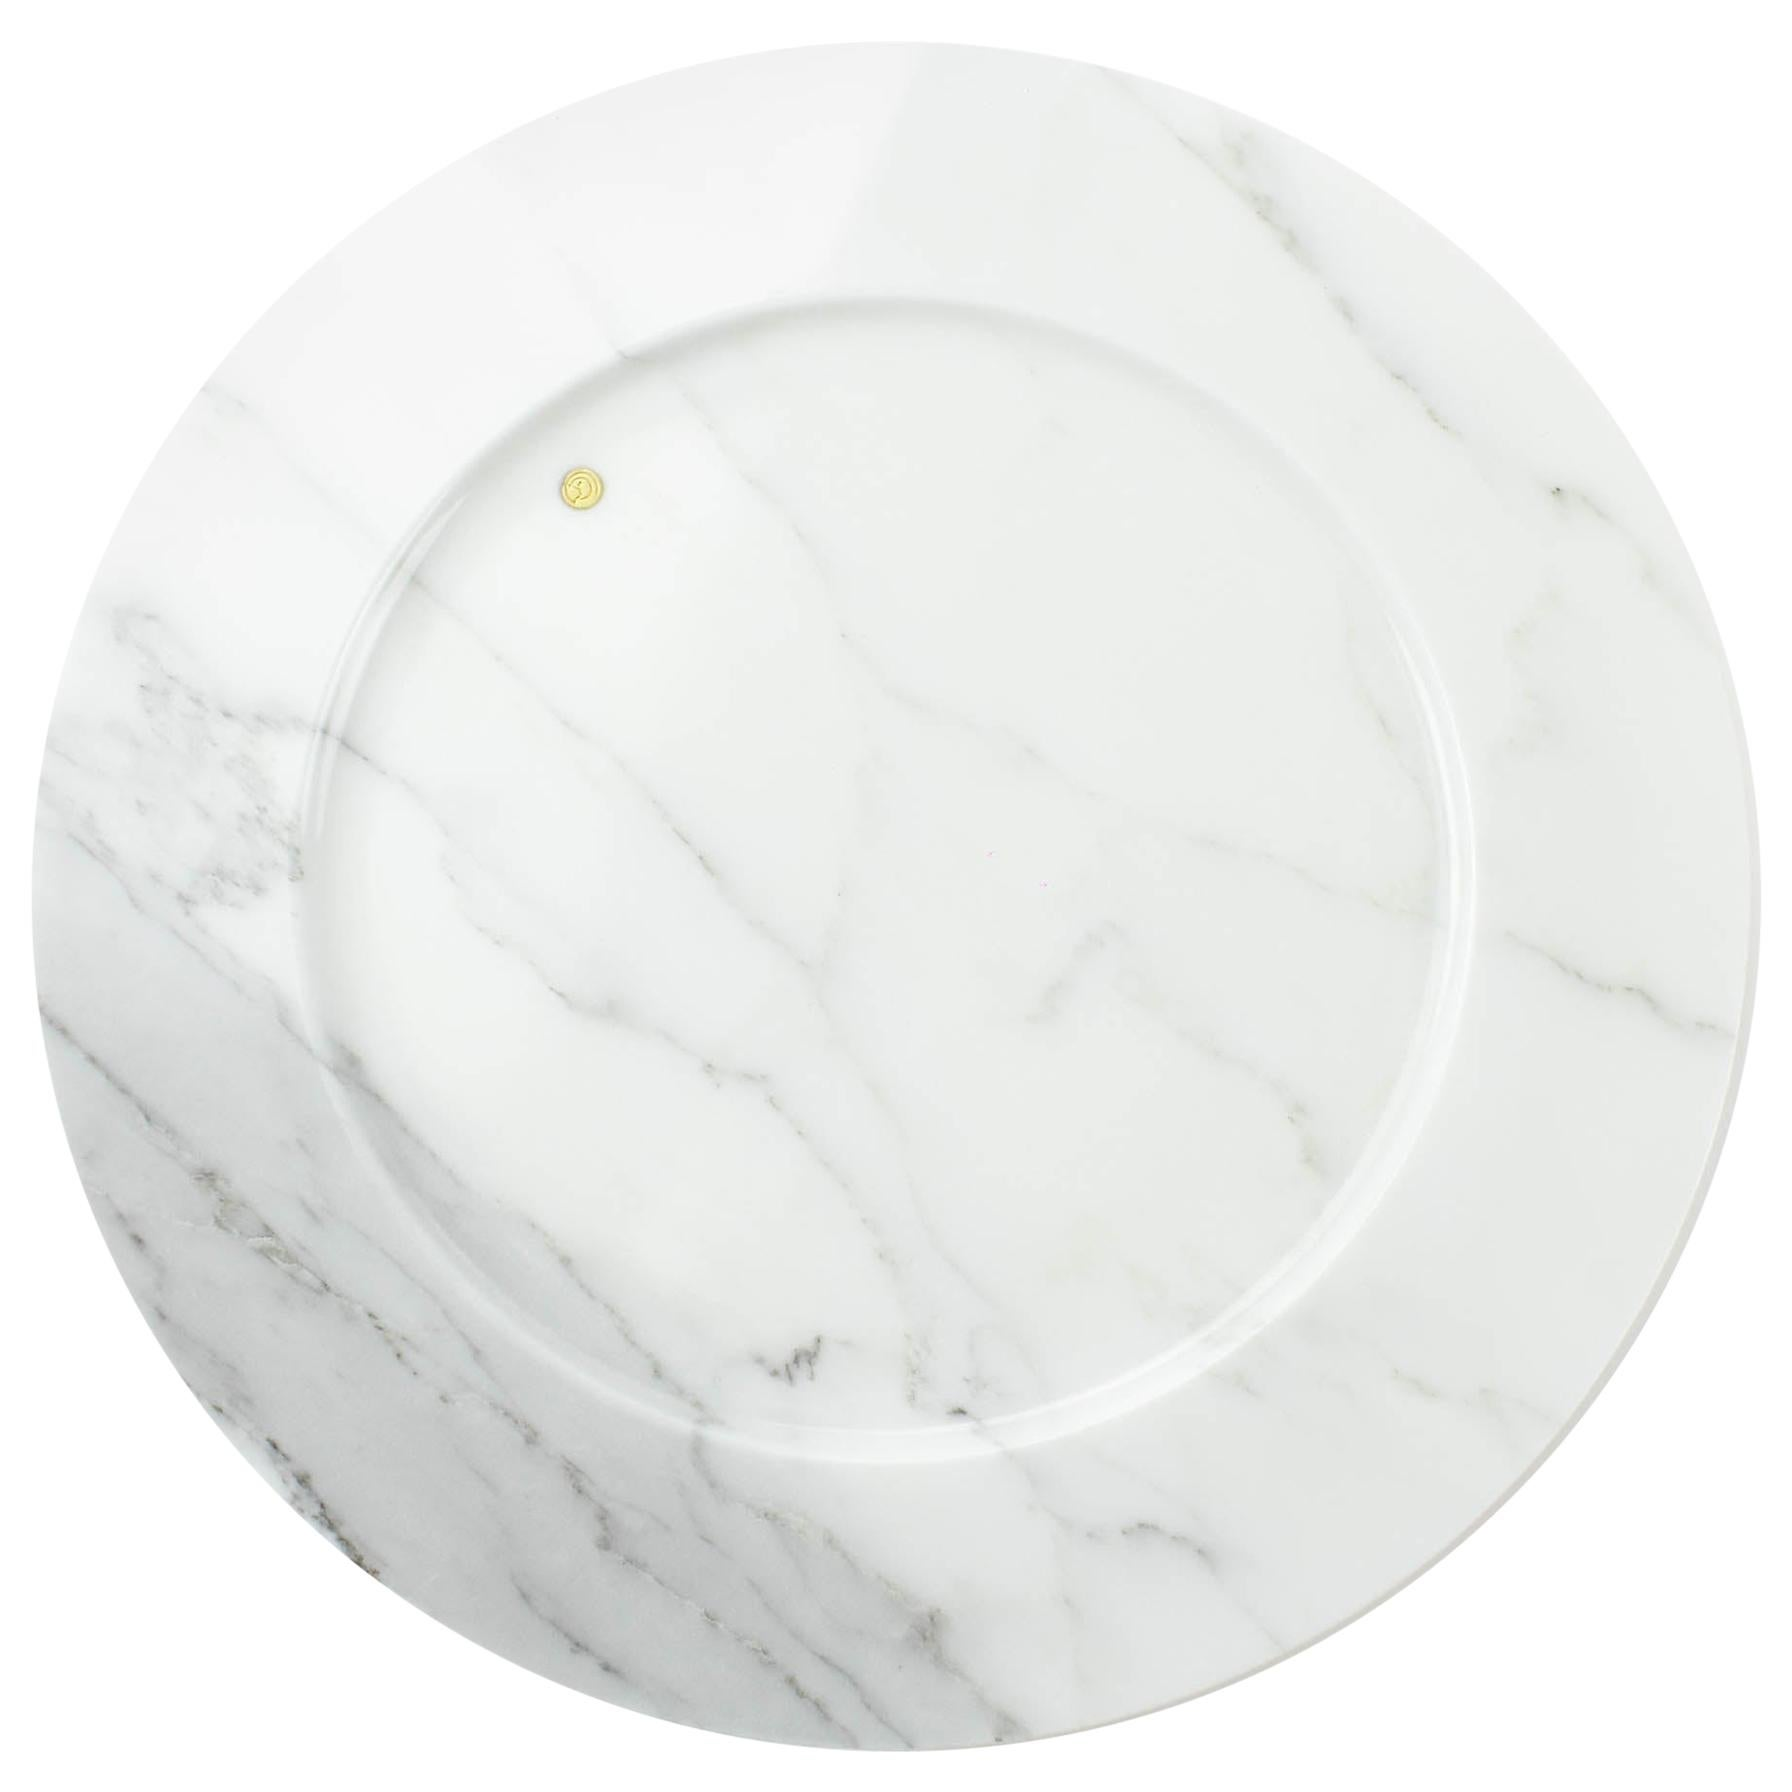 Set of 4 Charger Plates in White Statuary Marble Design by Pieruga Marble